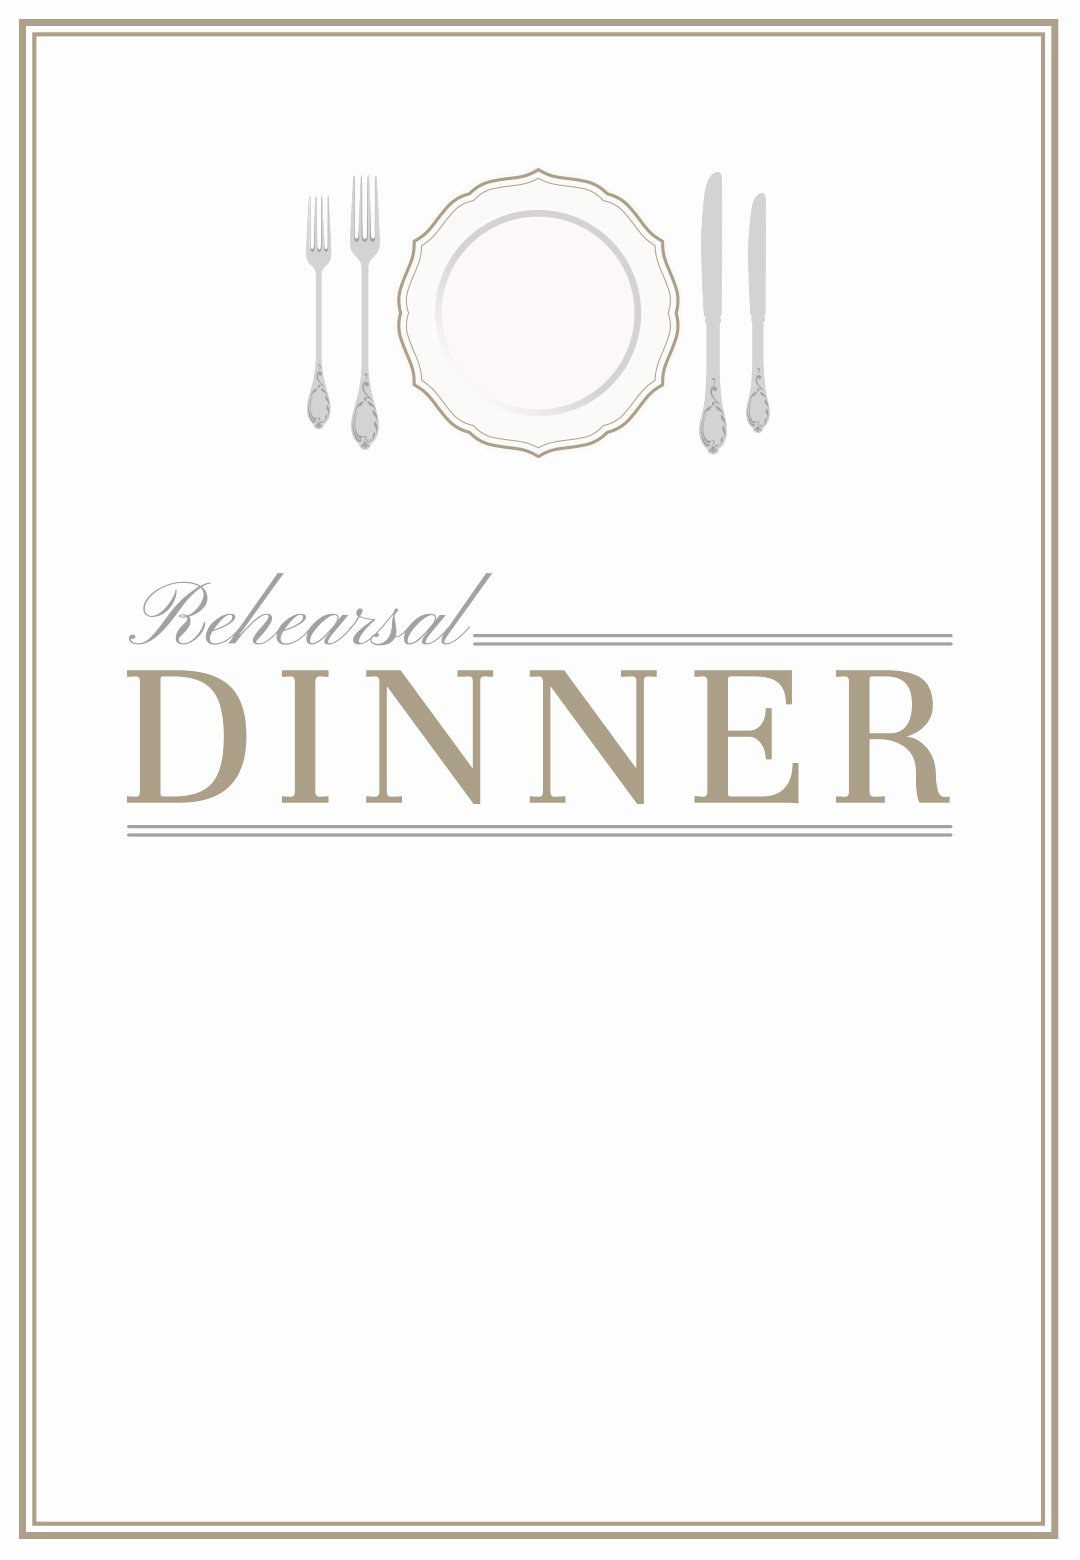 Business Dinner Invitation Template Inspirational Dinner Invitation Templates Free Printable Templates